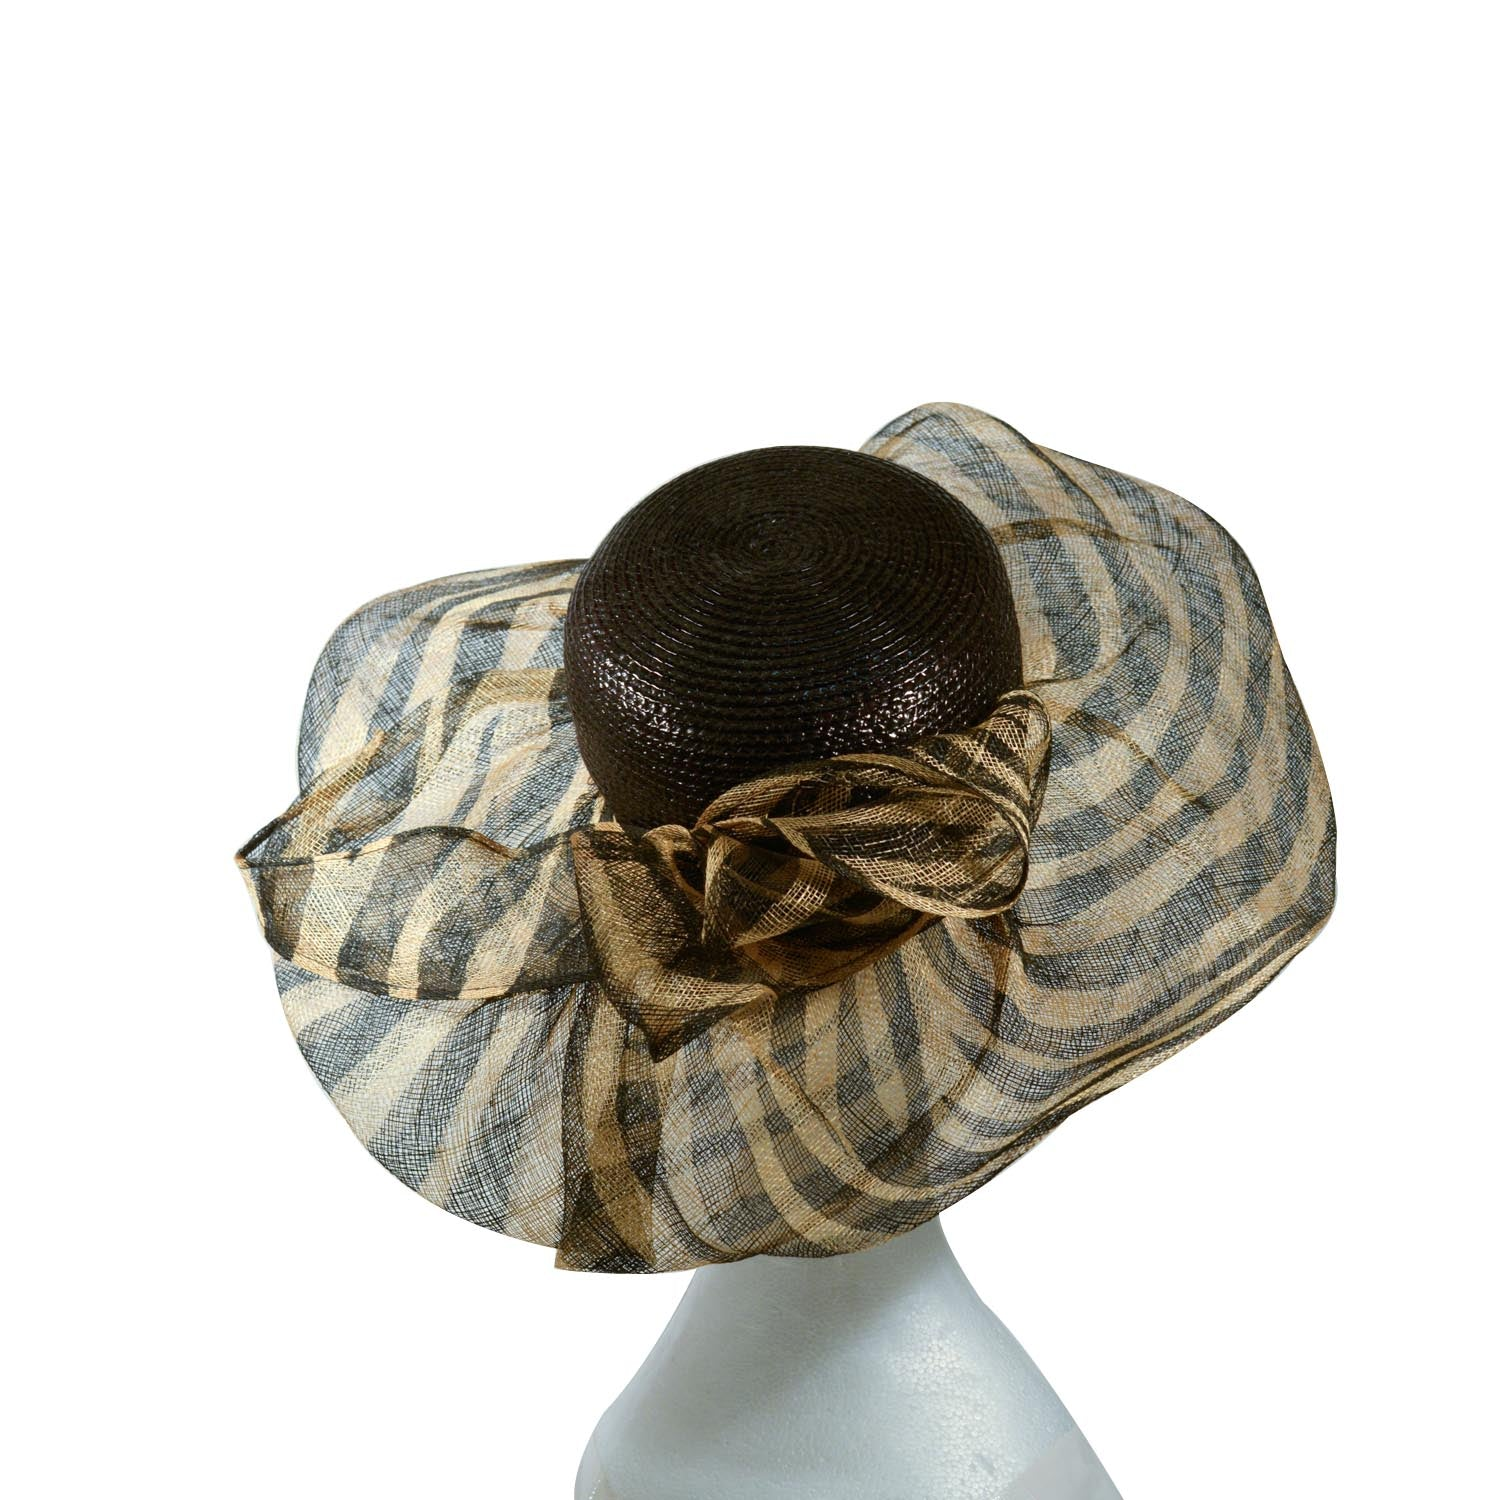 Black Italian shiny straw crown with brown and black stripe fine straw brim